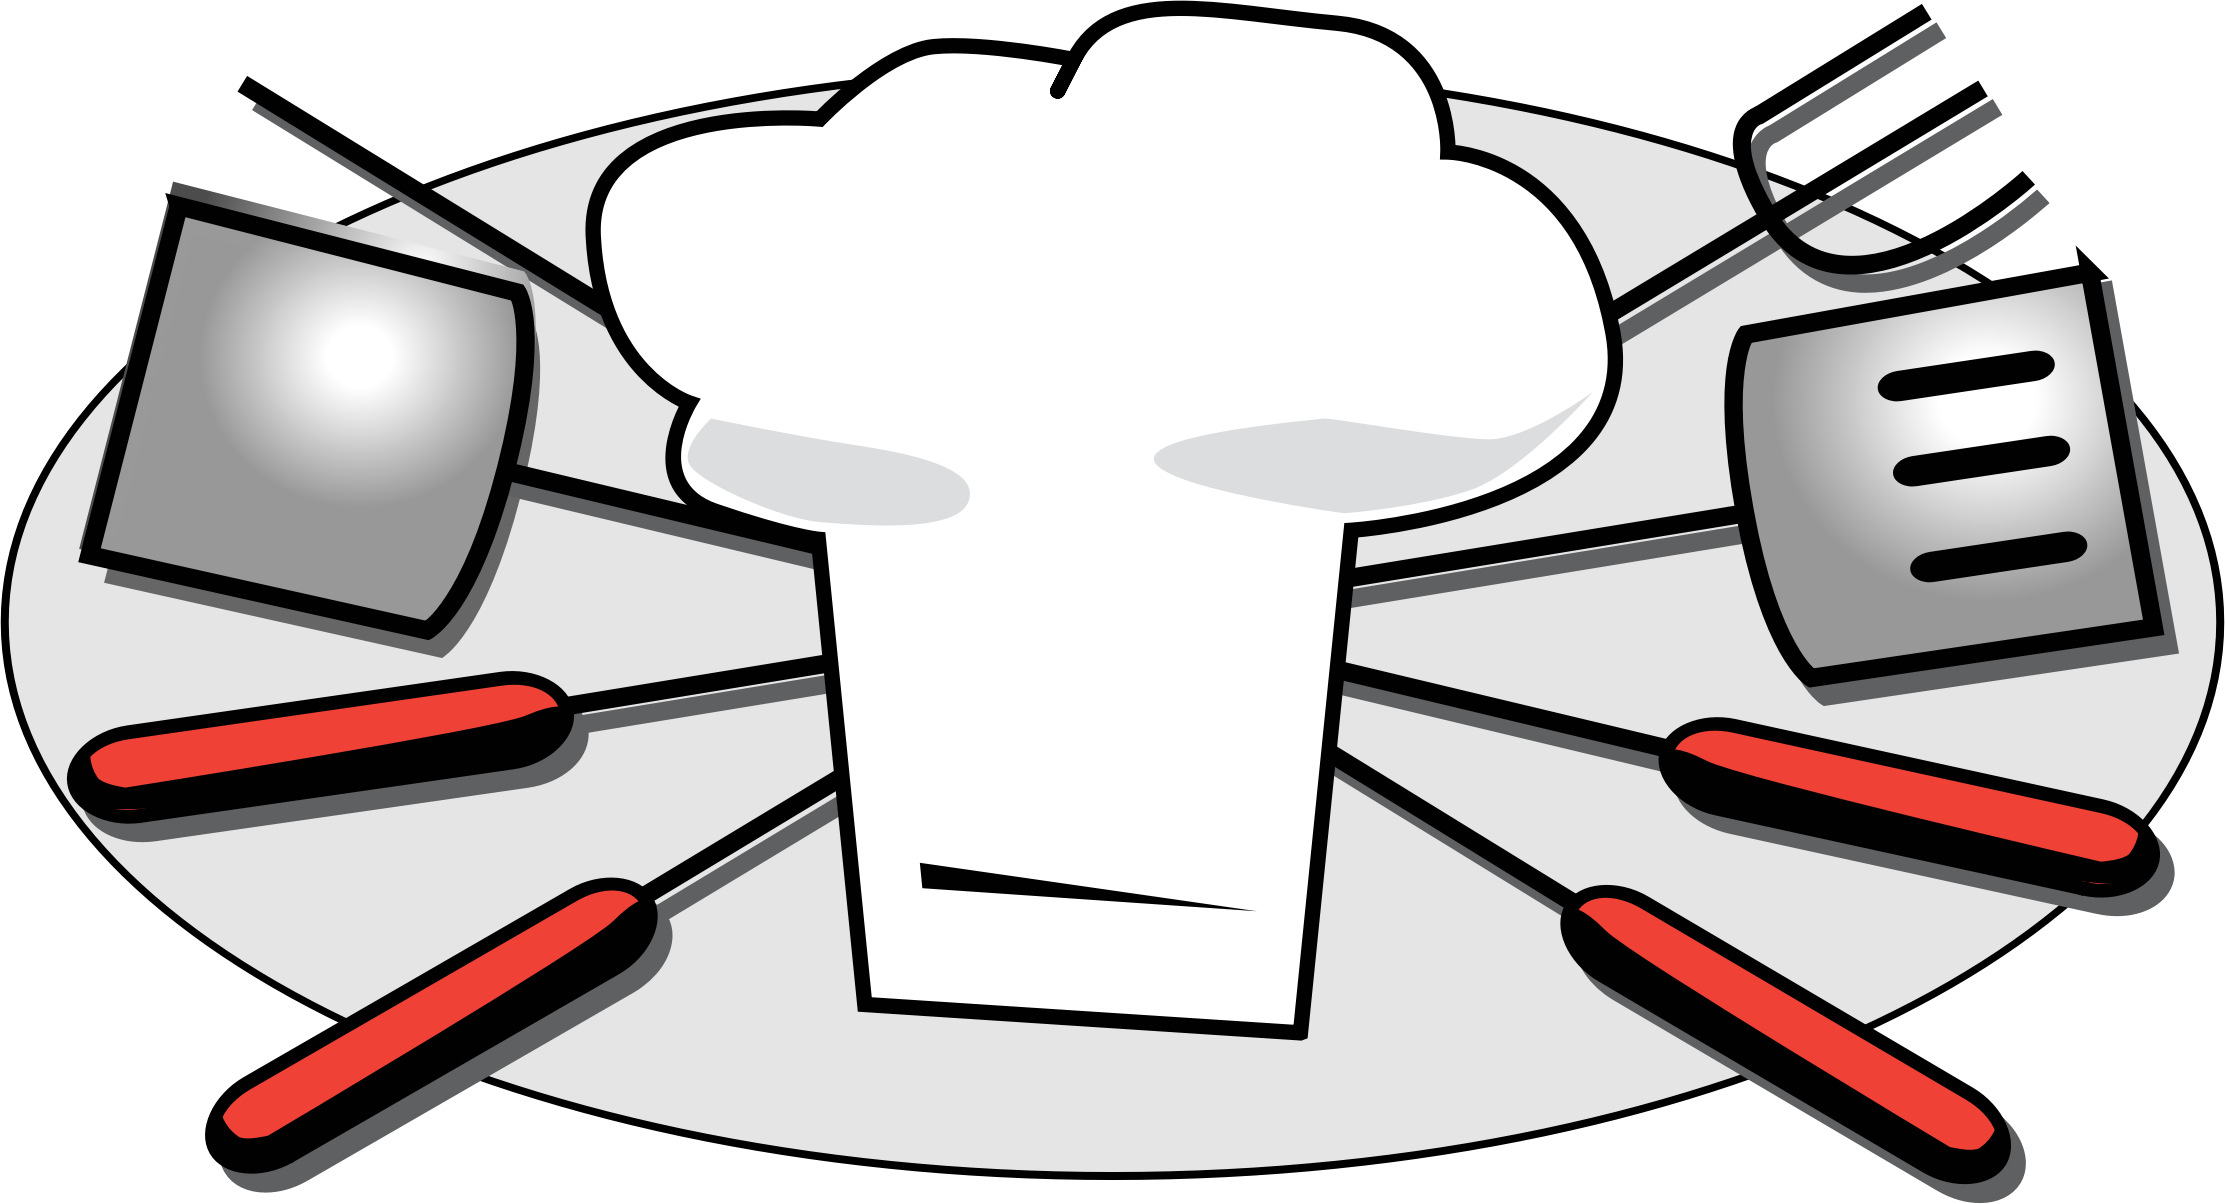 Flames clipart bbq, Flames bbq Transparent FREE for download.